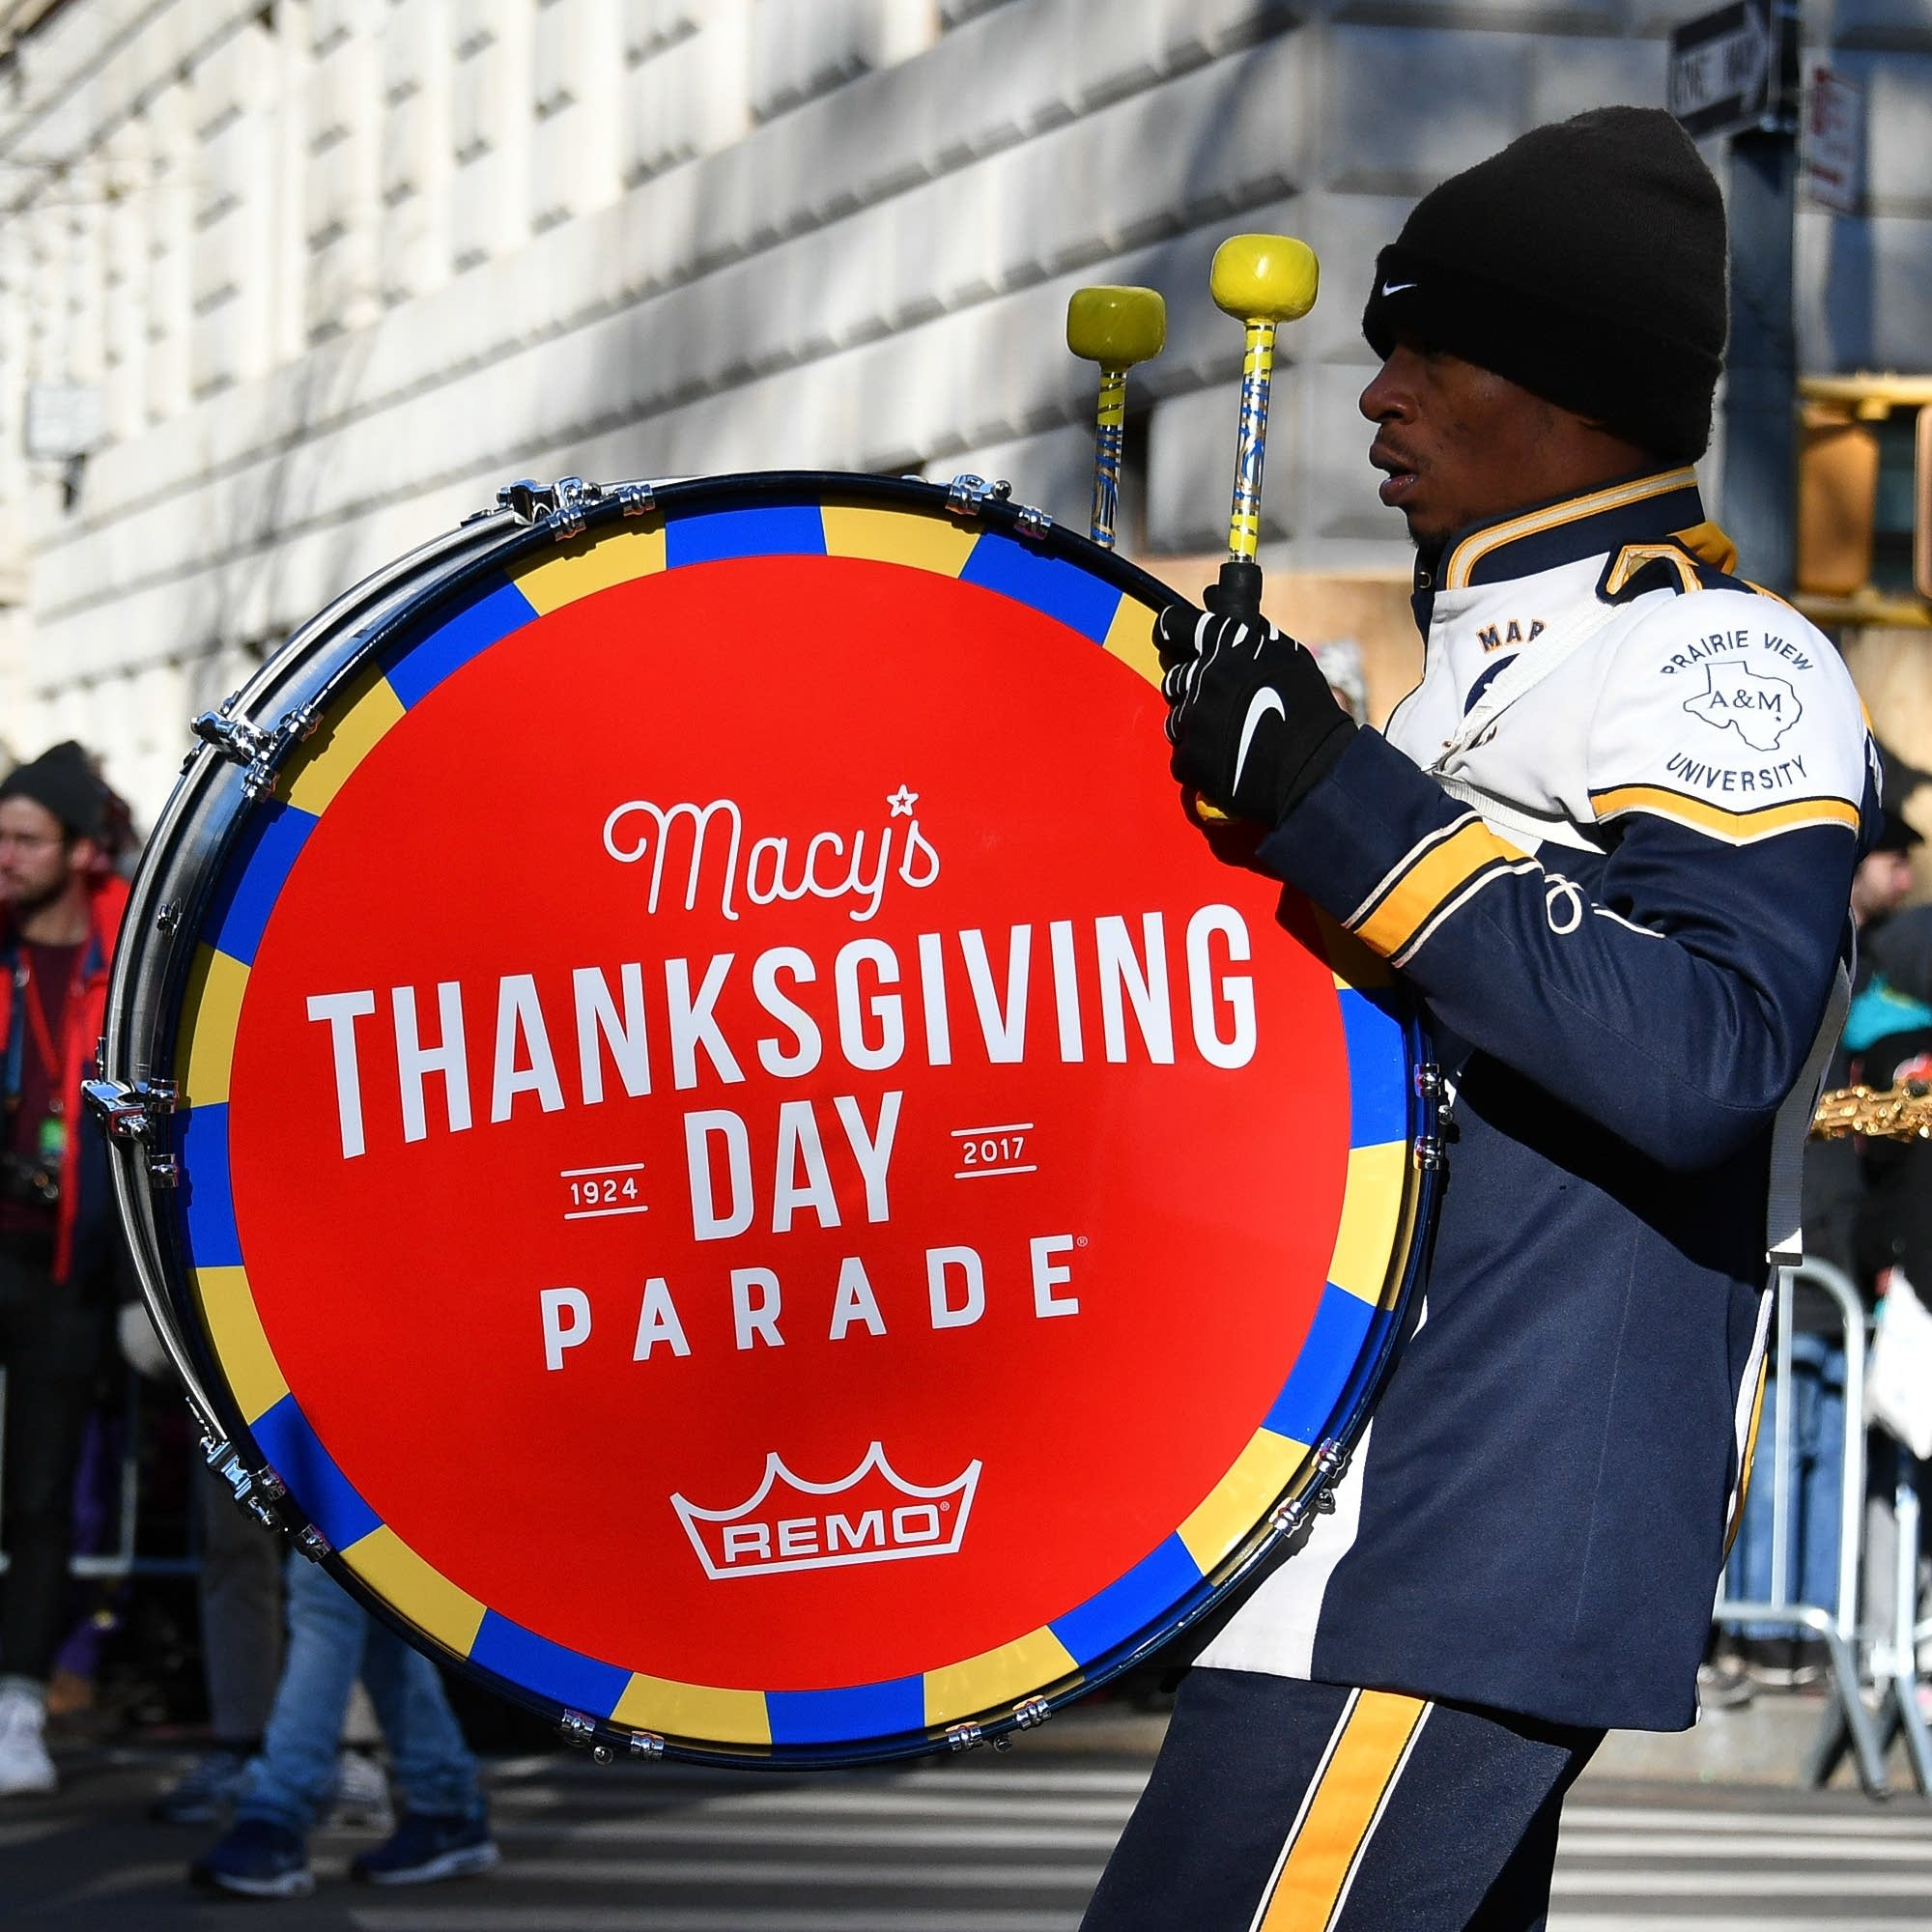 2017 Macy's Thanksgiving Day Parade.